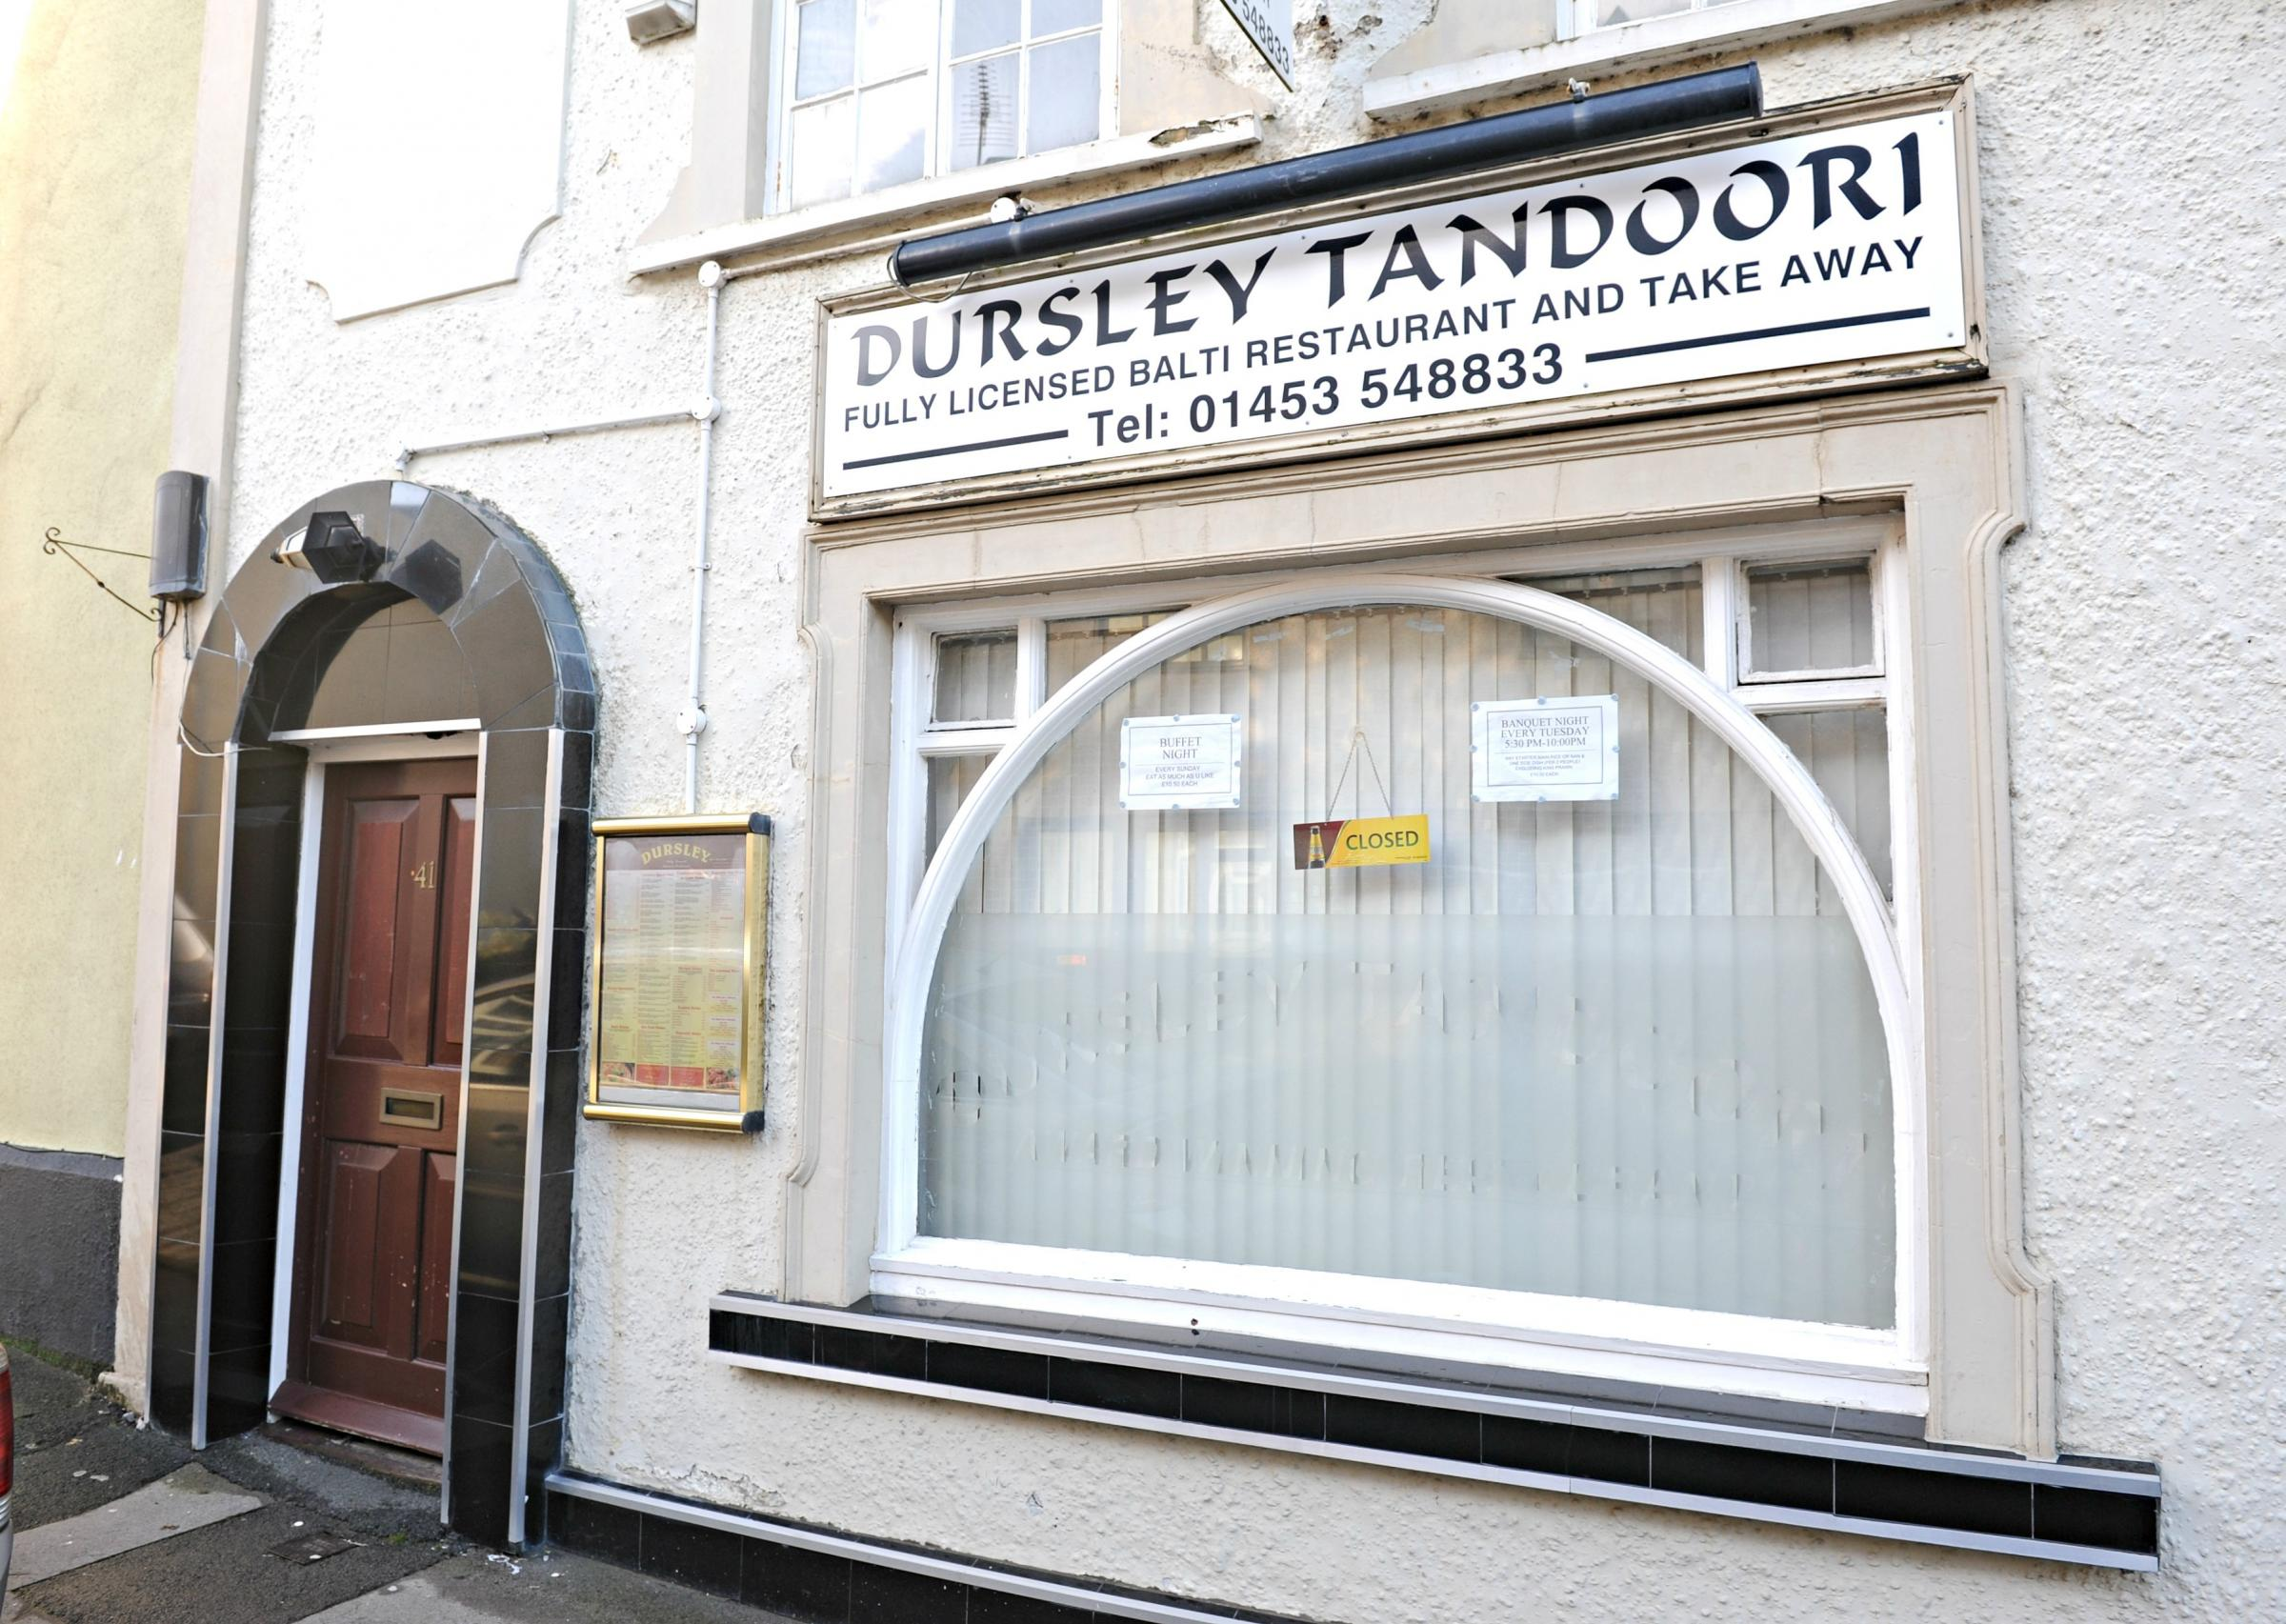 The Dursley Tandoori in Long Street (3424228)